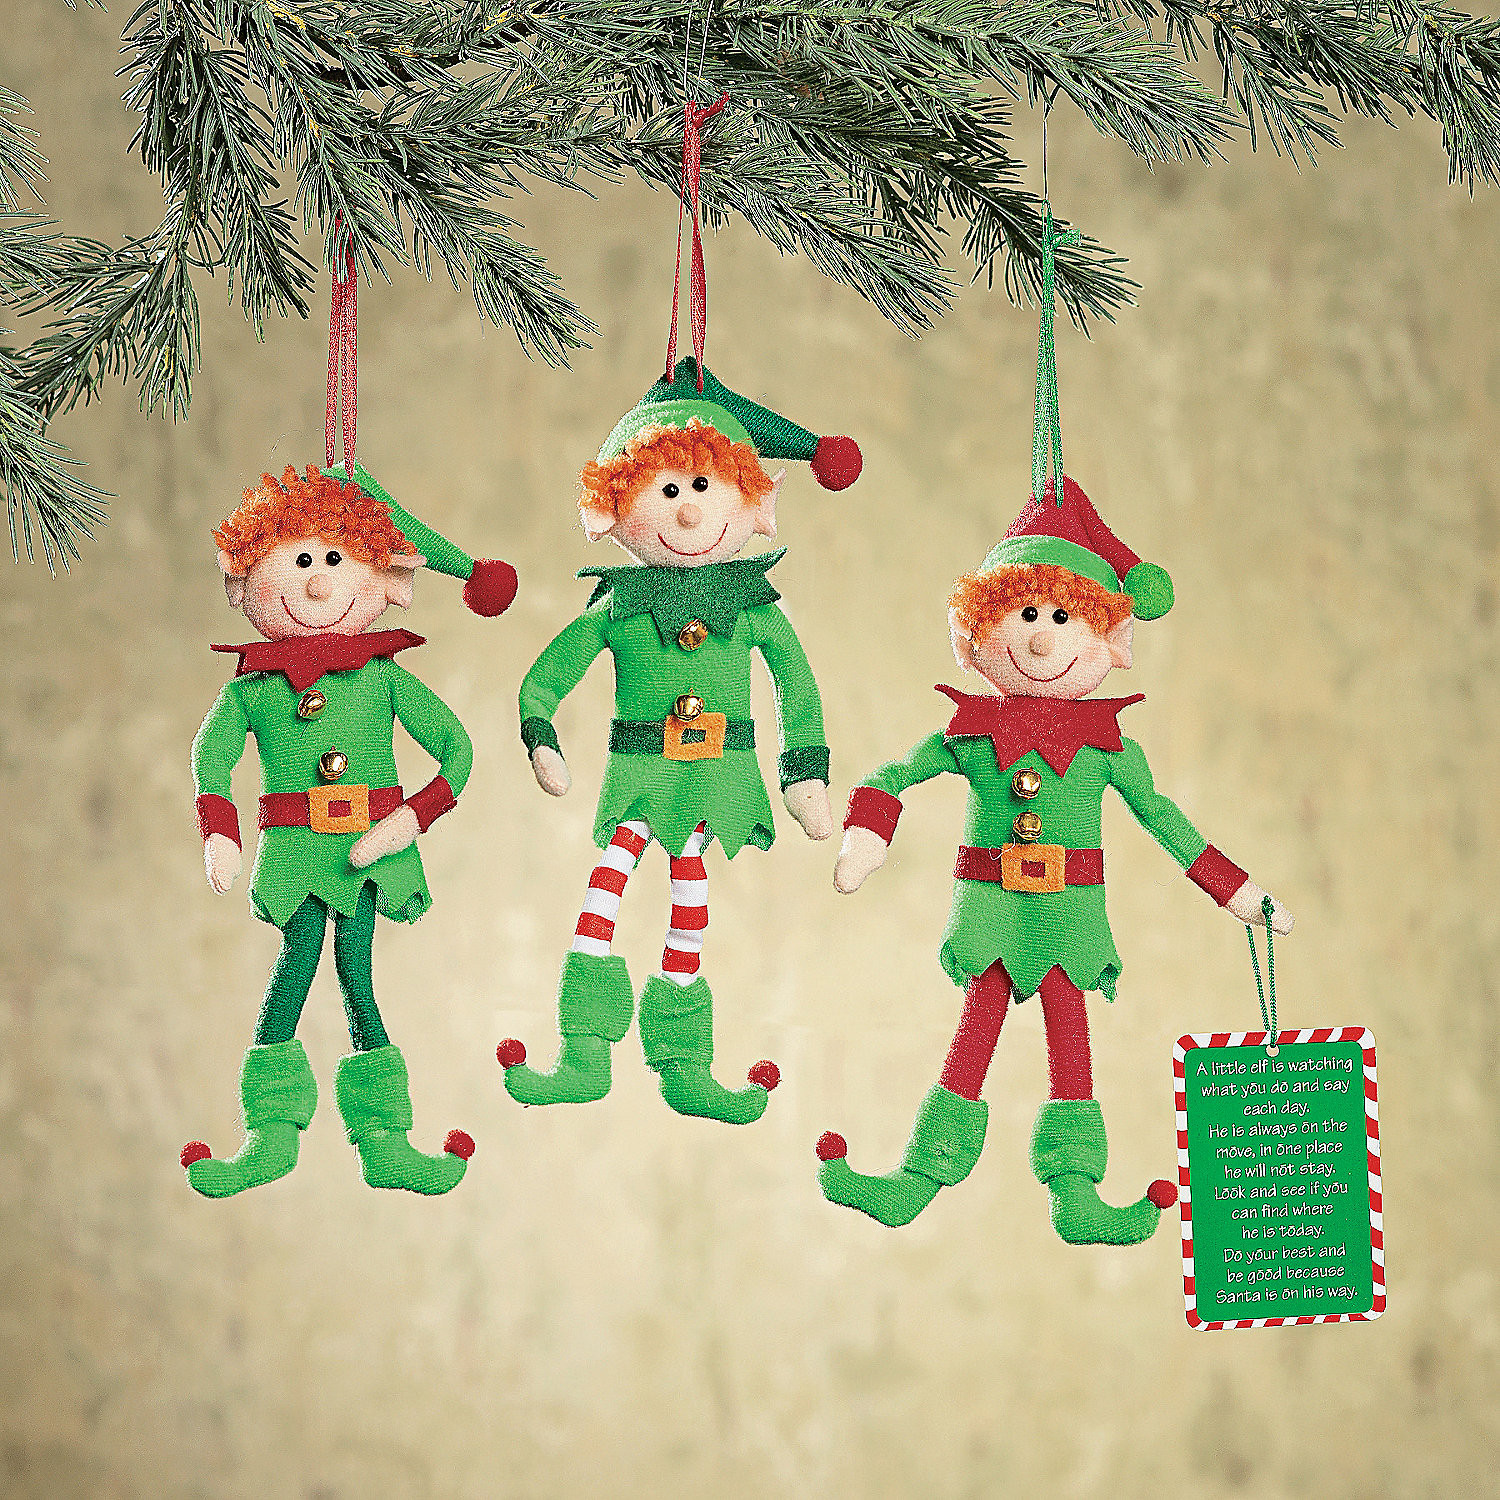 Elf Christmas Decorations New Home Decor Accents Holiday Decorations & Accessories Of Brilliant 42 Images Elf Christmas Decorations